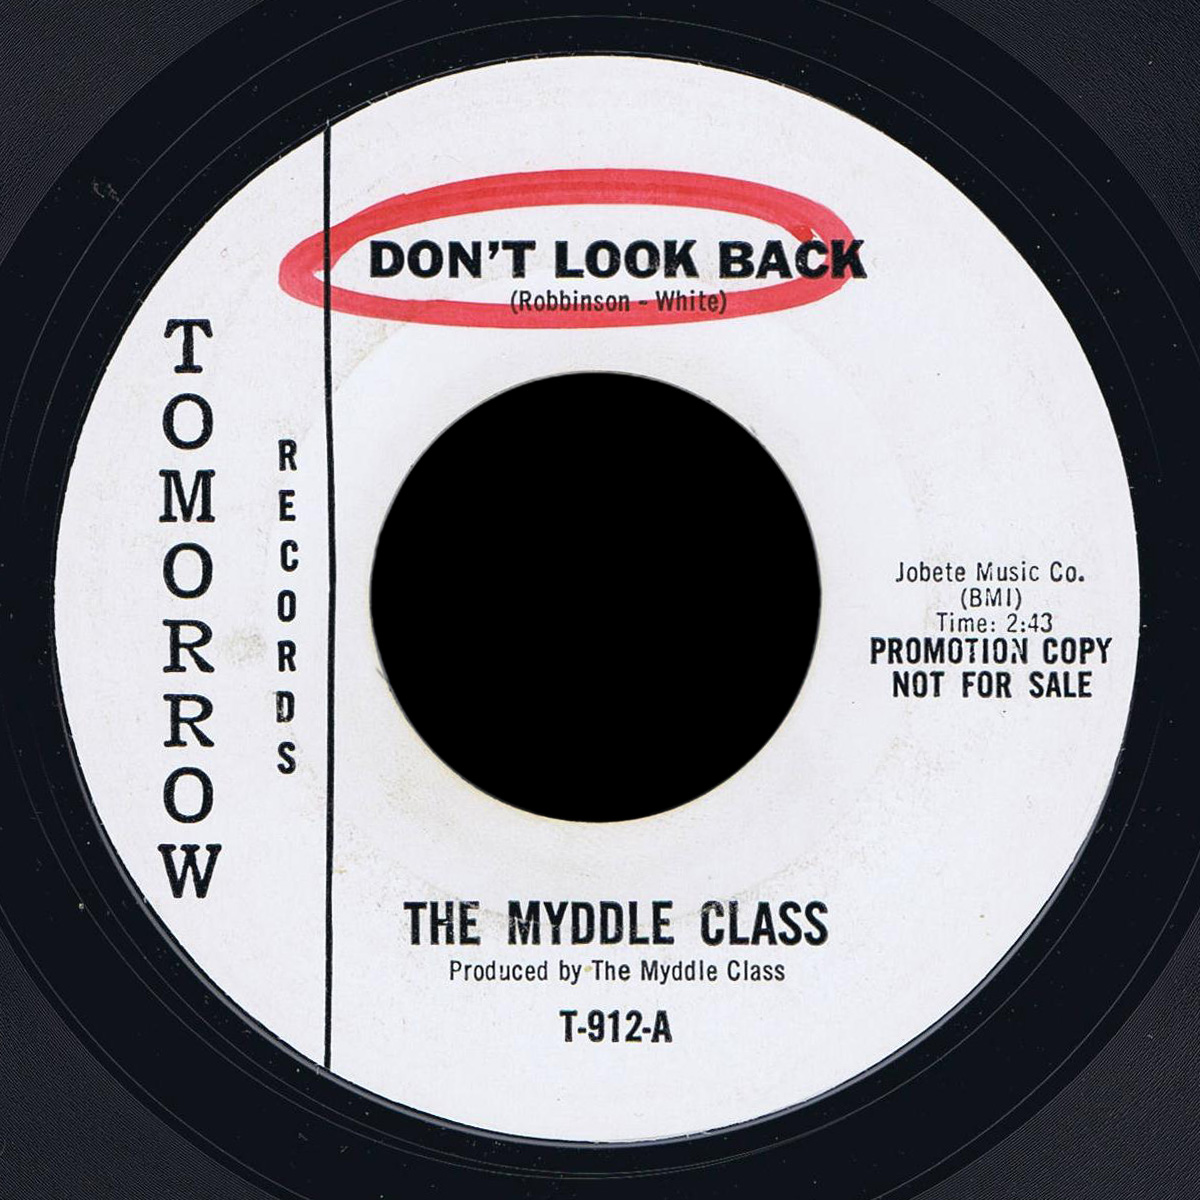 Myddle Class Tomorrow 45 Don't Look Back